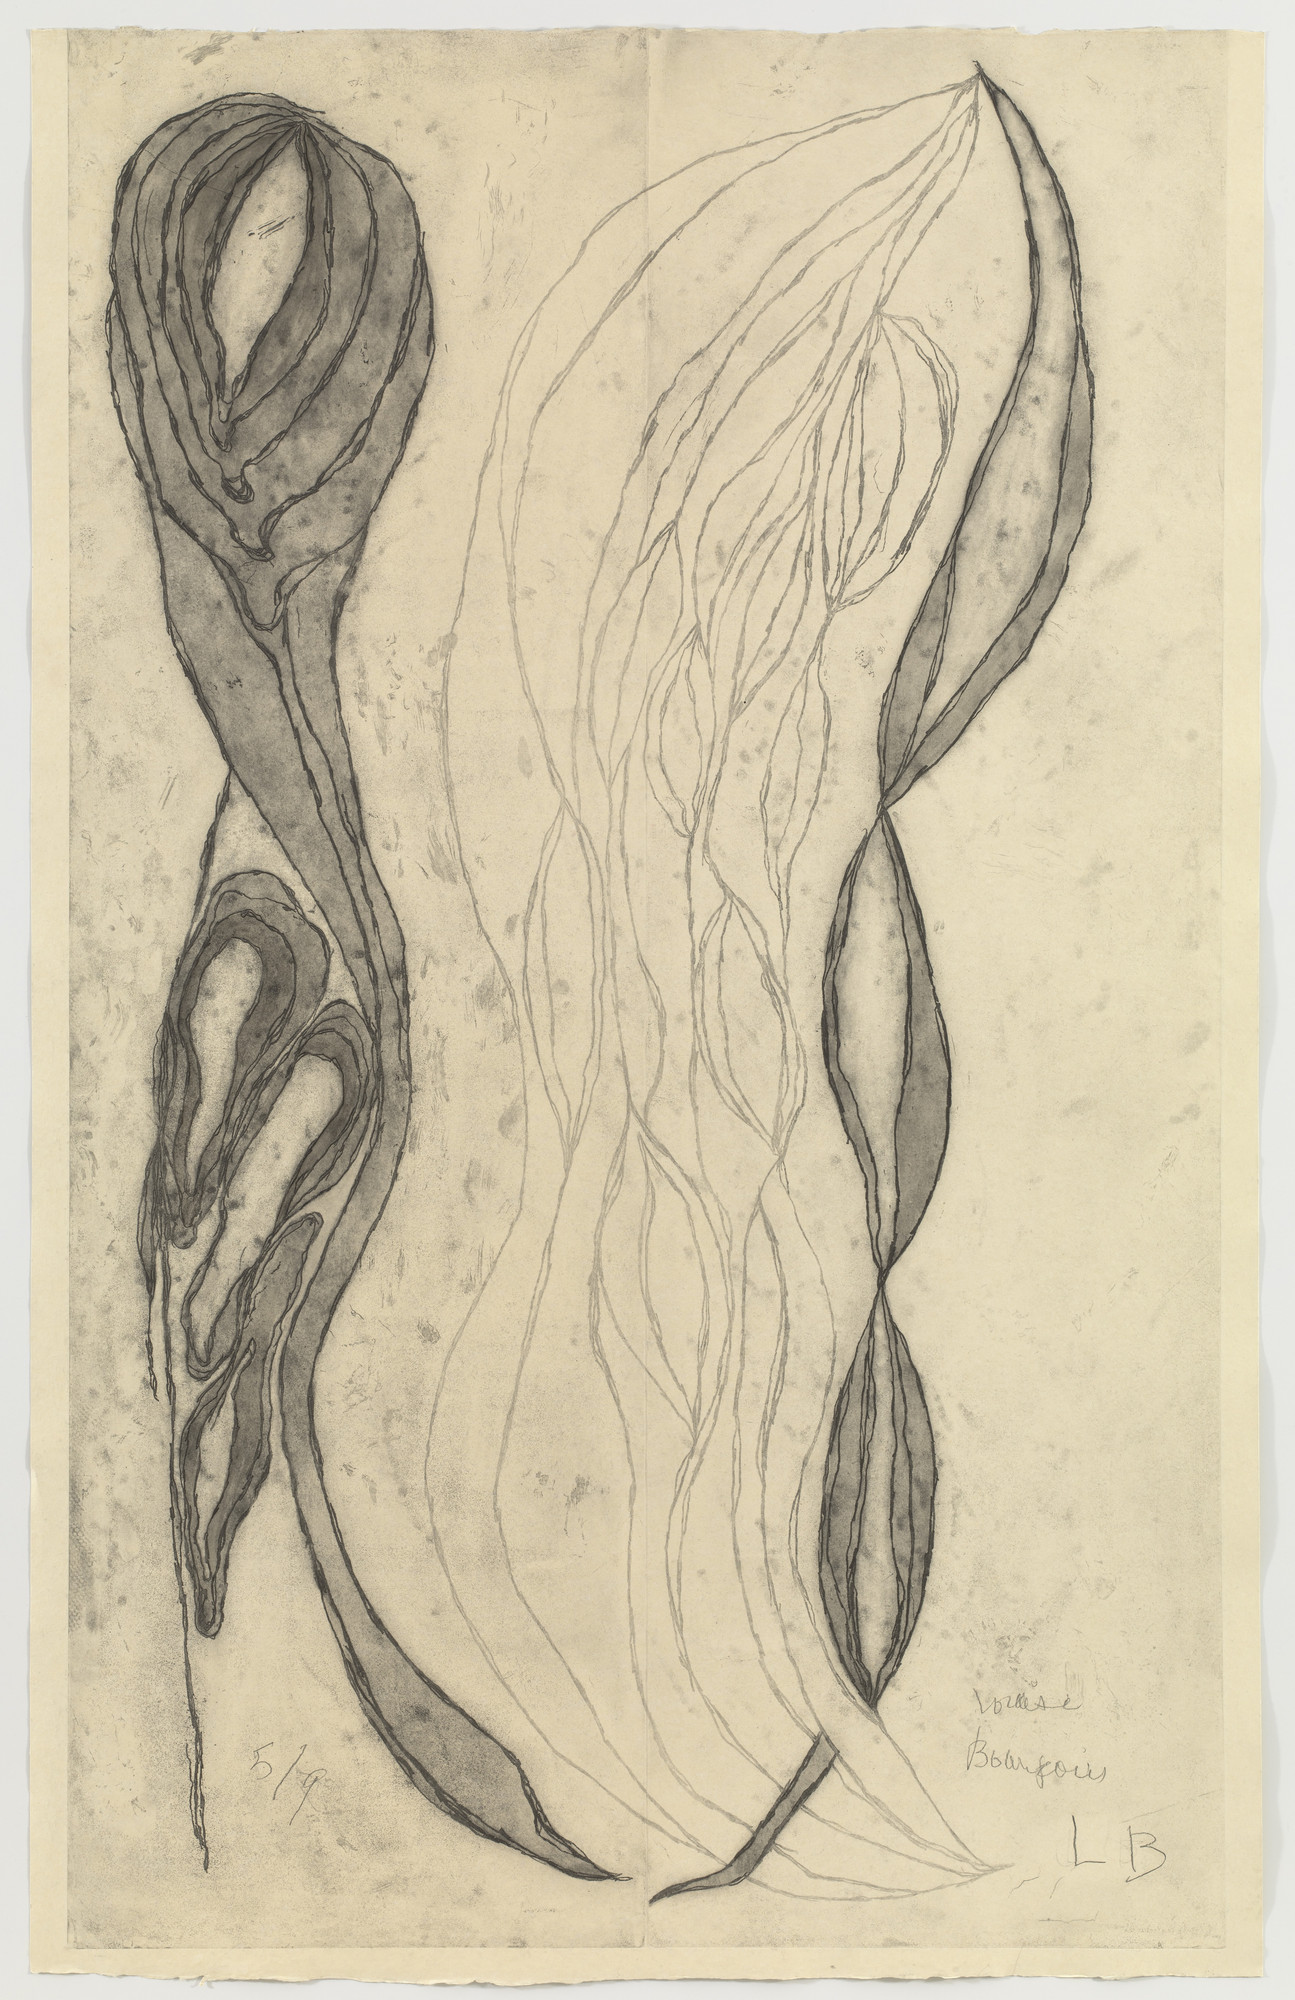 Louise Bourgeois. The Unfolding. 2007